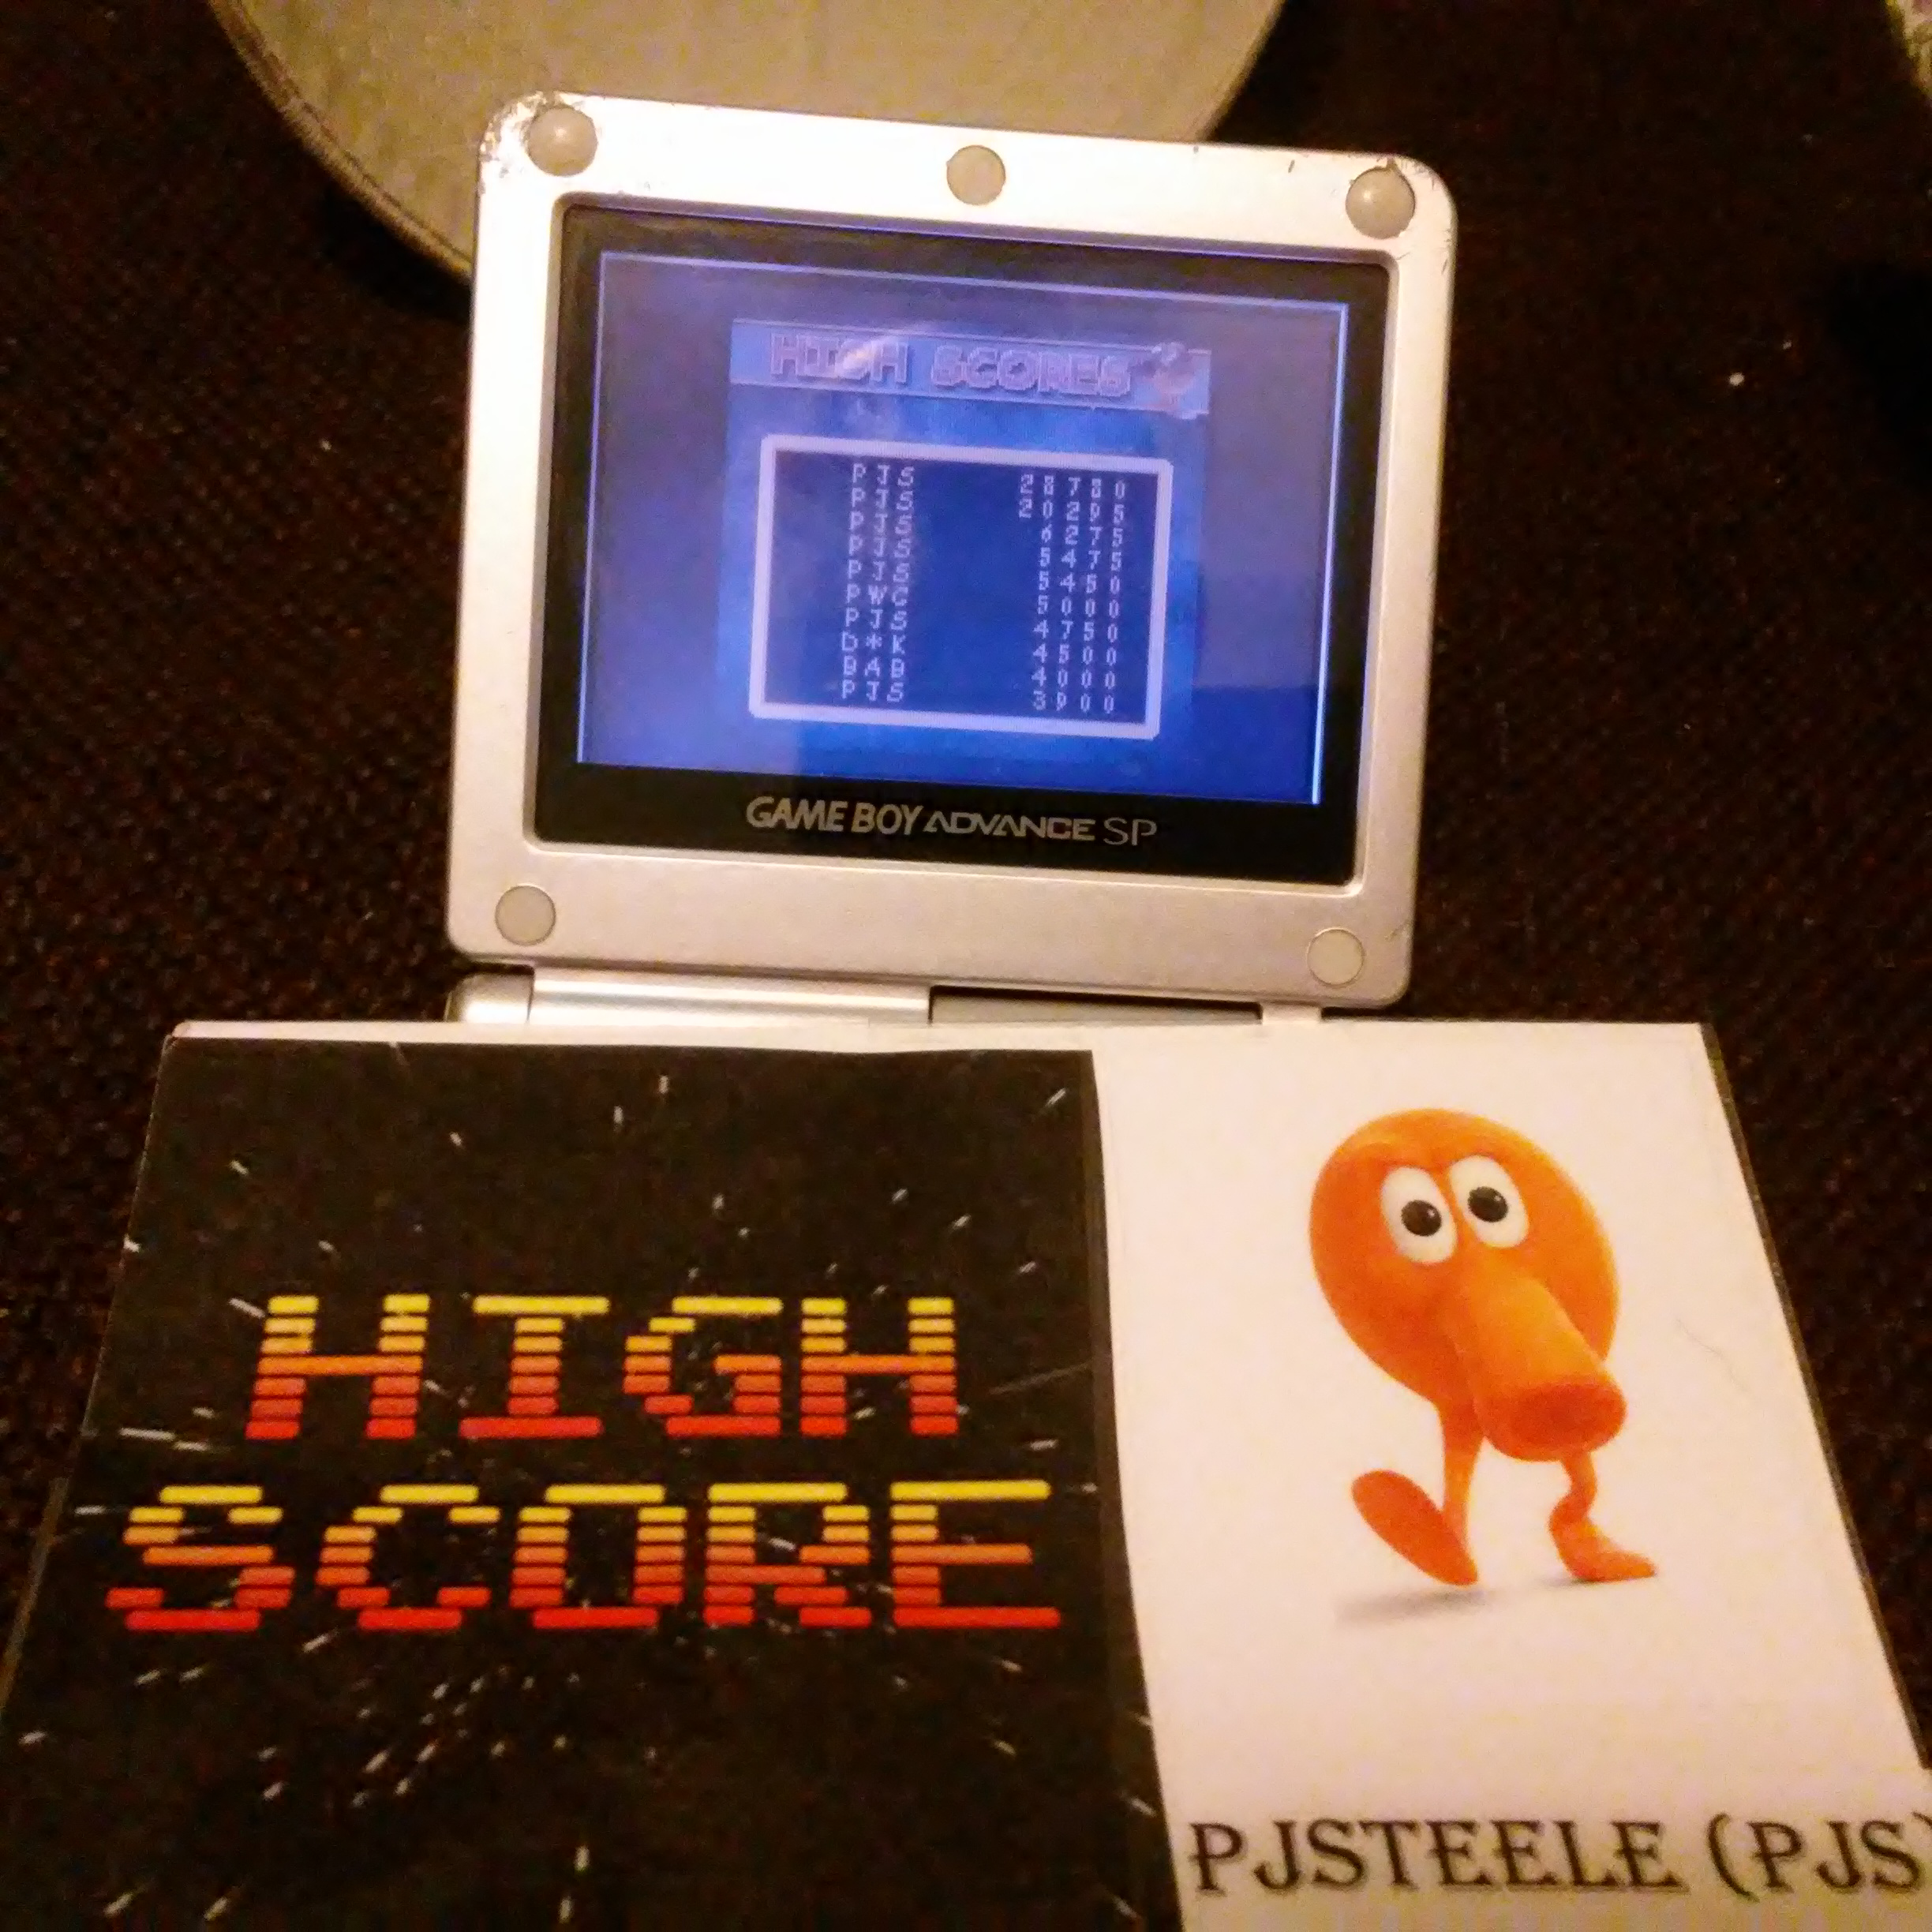 Pjsteele: Q*Bert: Arcade (Game Boy Color) 28,780 points on 2017-06-07 22:13:17